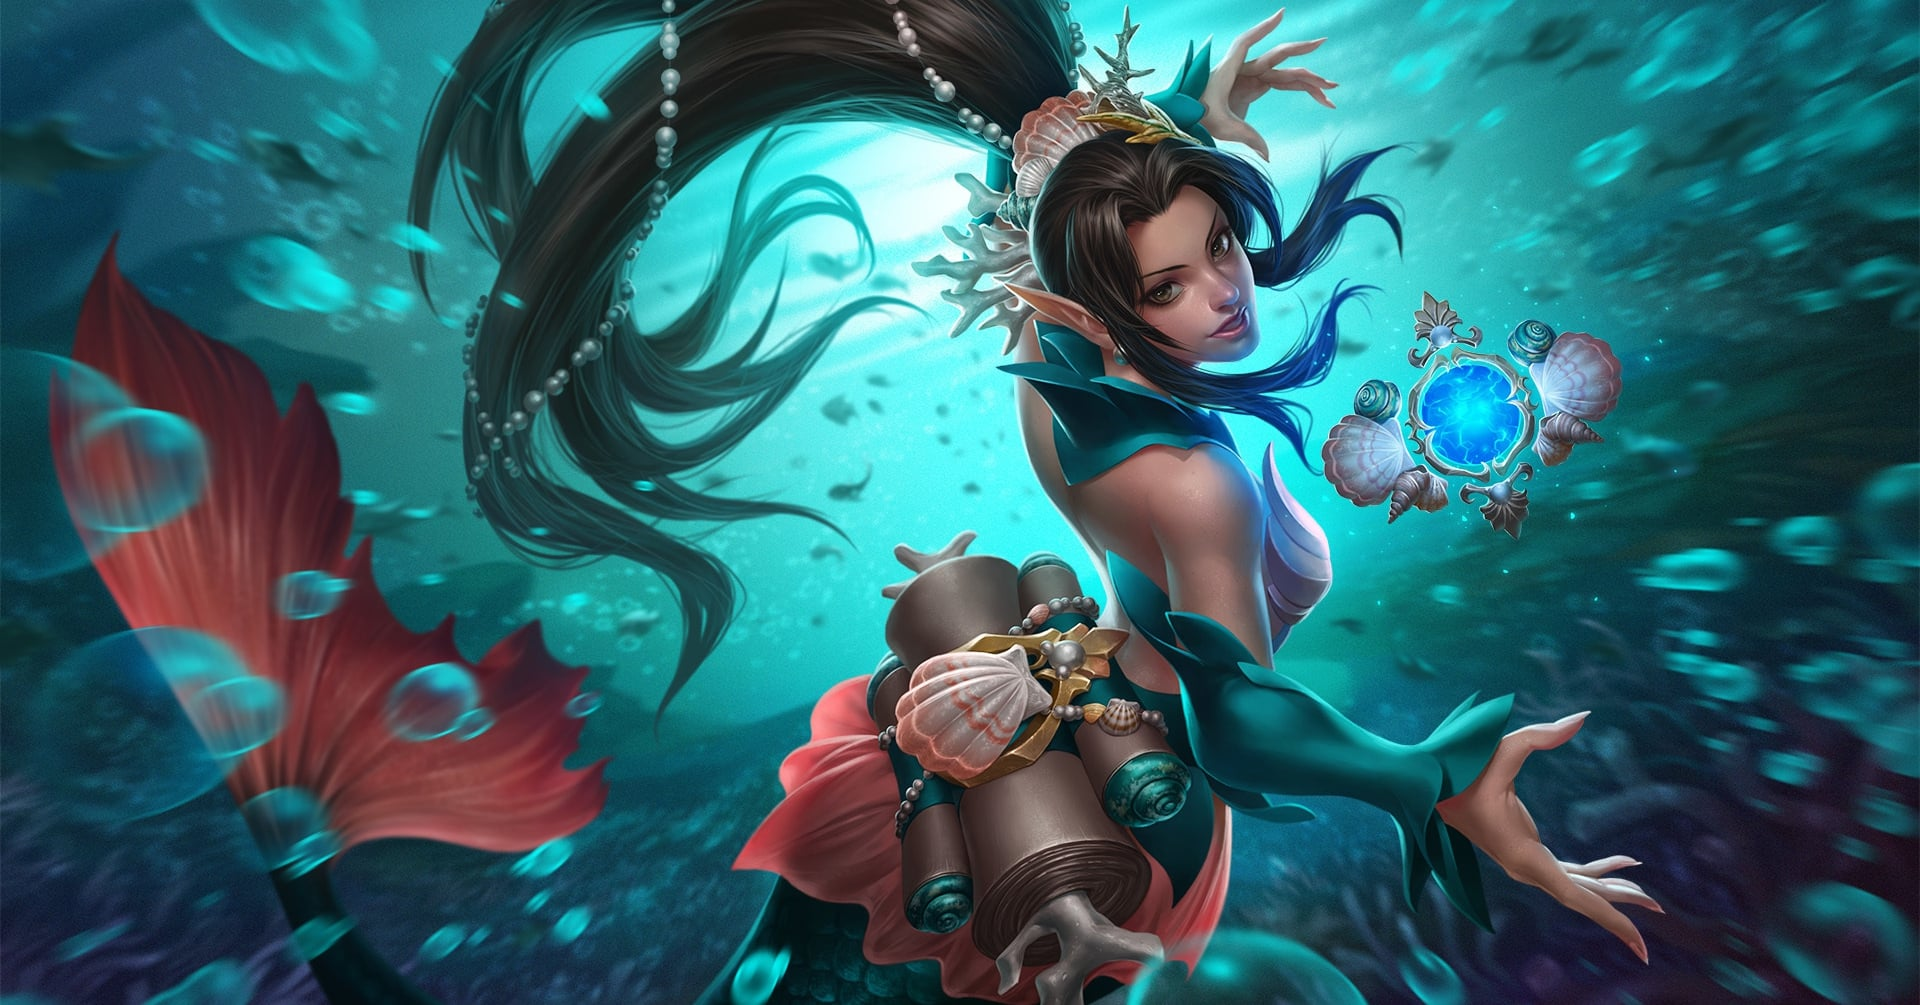 Ying - The Blossom, Mermaid Skin, Paladins